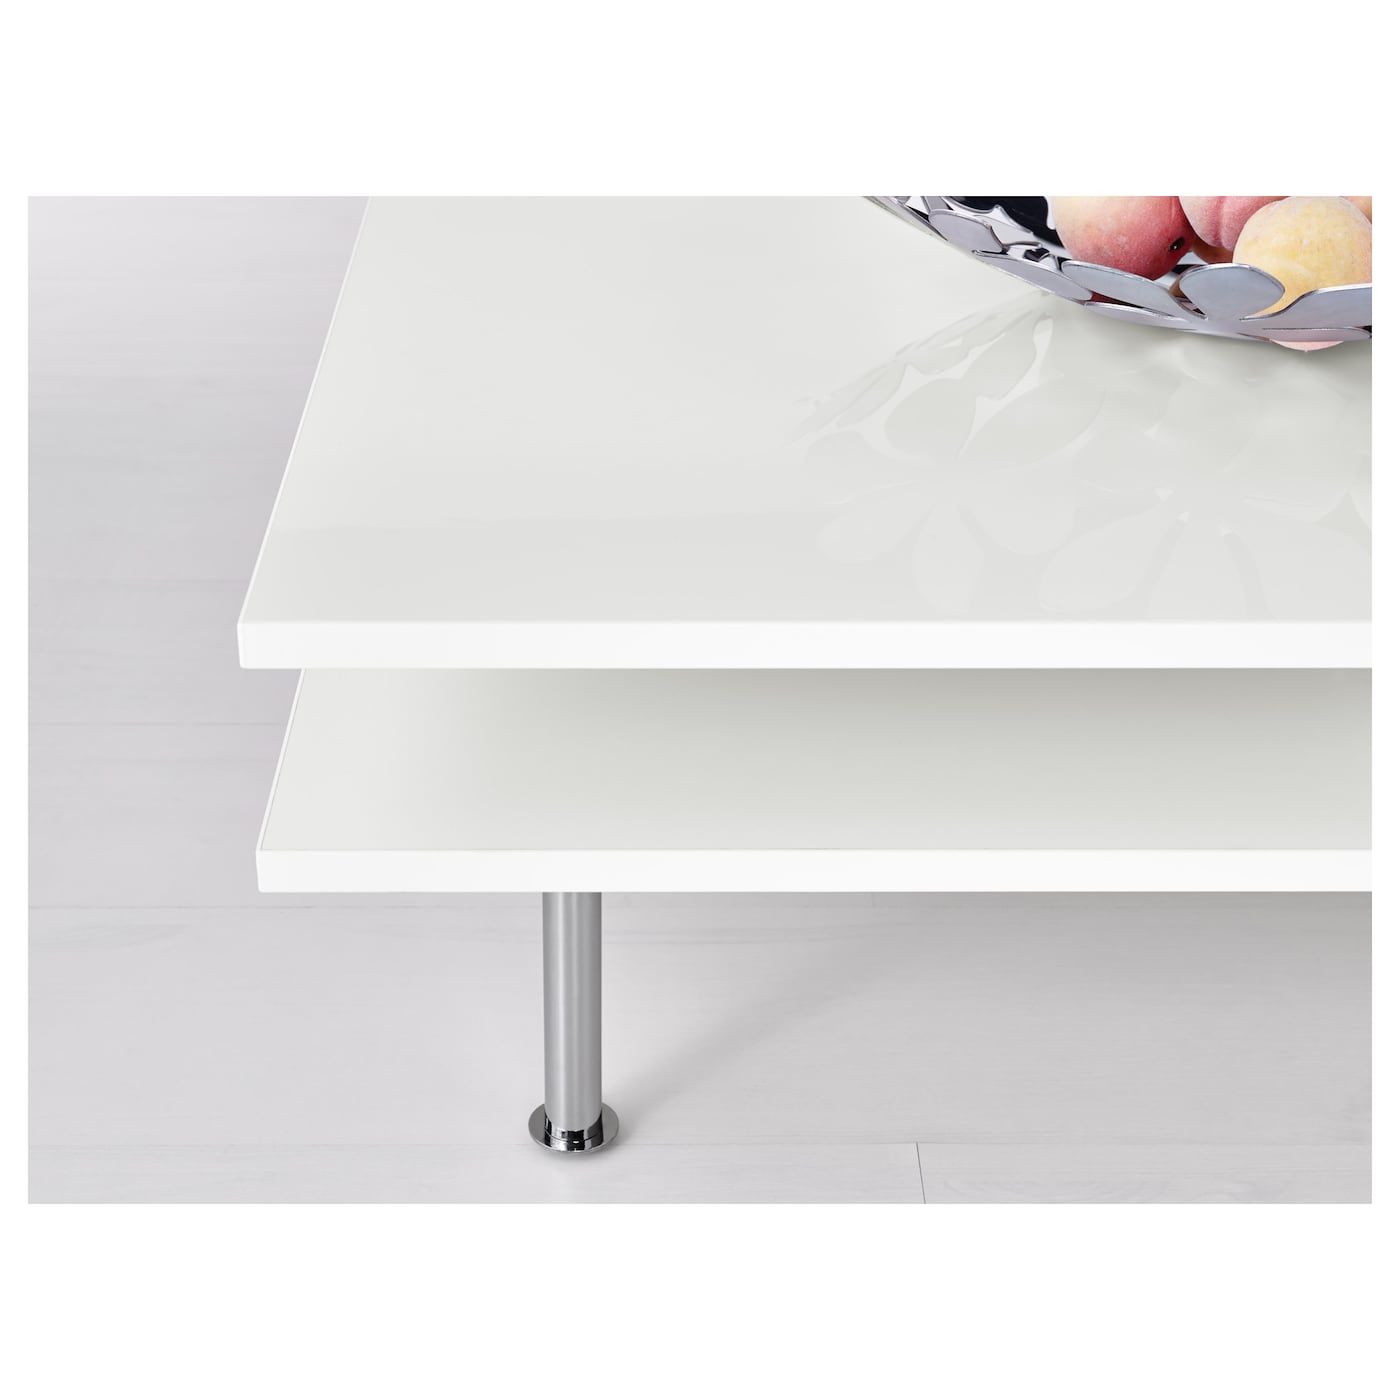 TOFTERYD Coffee table High gloss white 95x95 cm IKEA